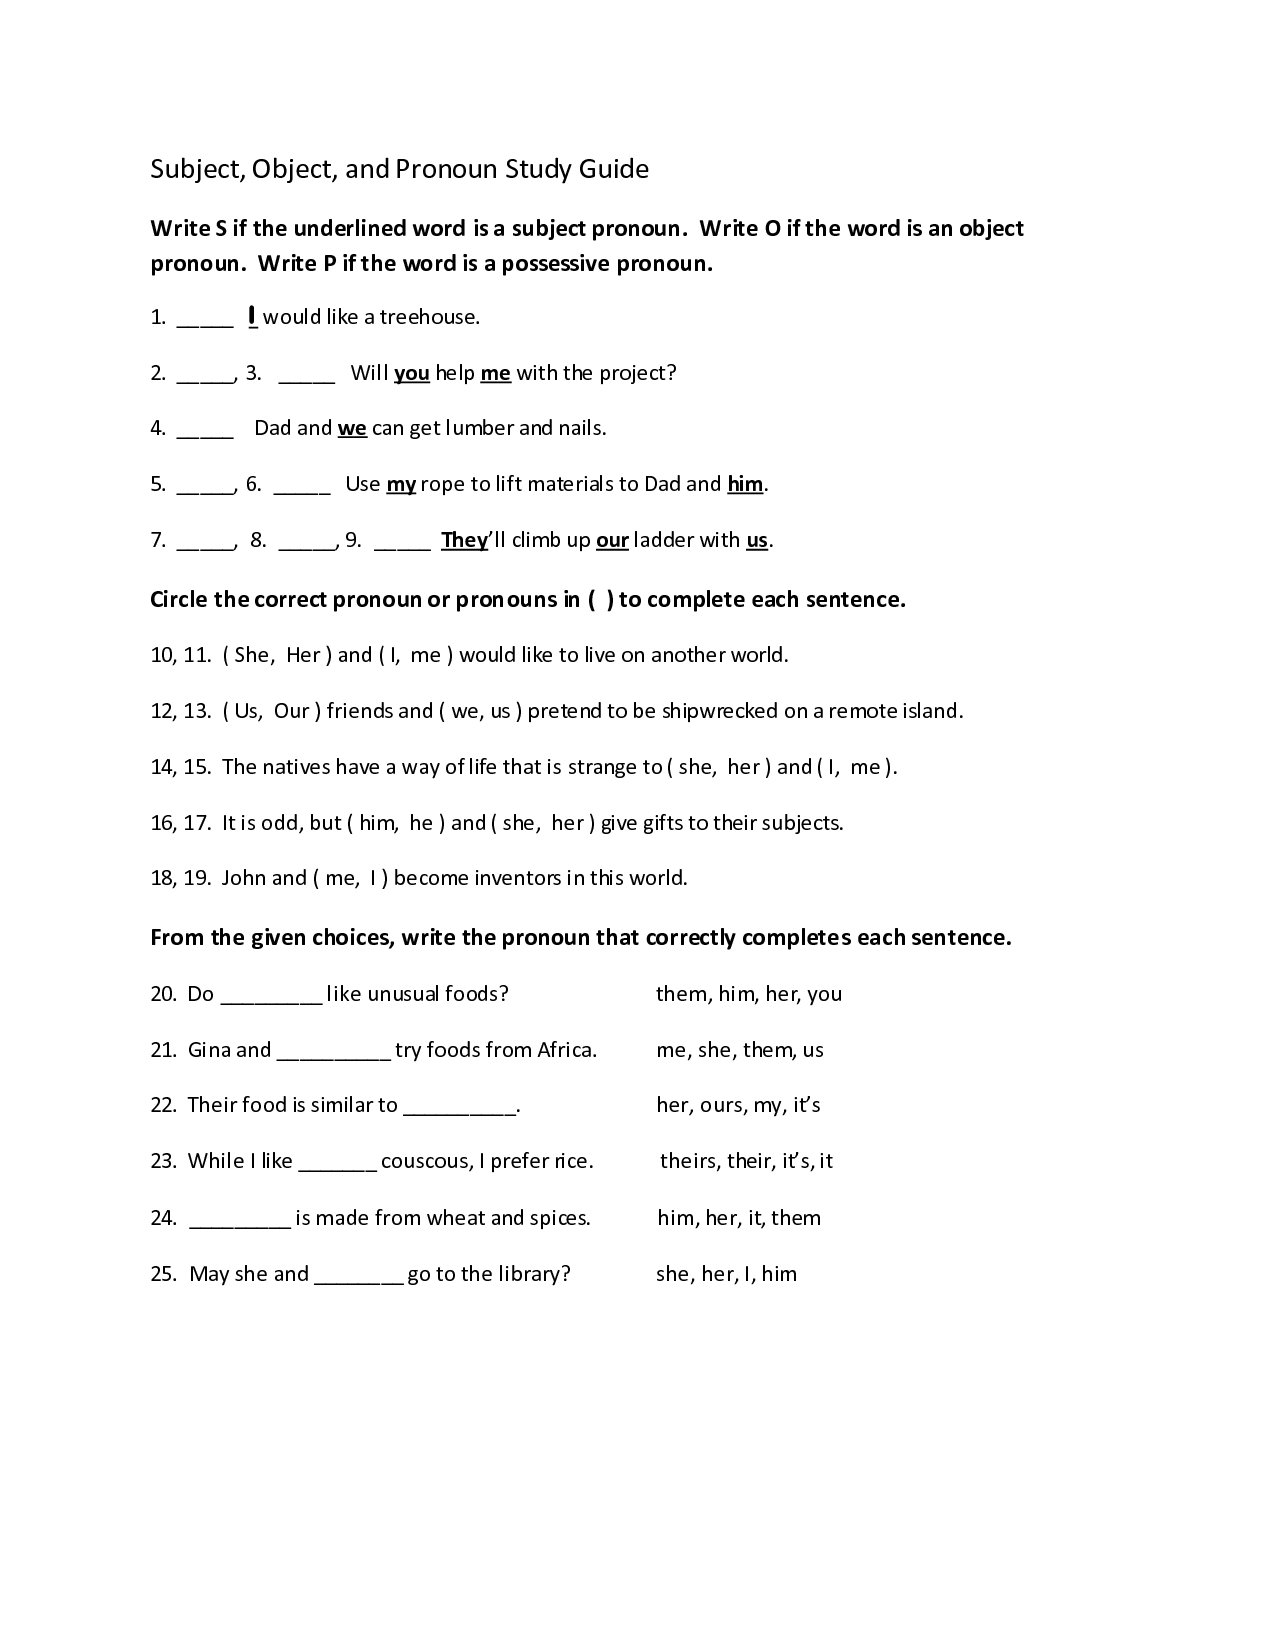 15 Best Images Of Subject Object Pronouns Worksheet